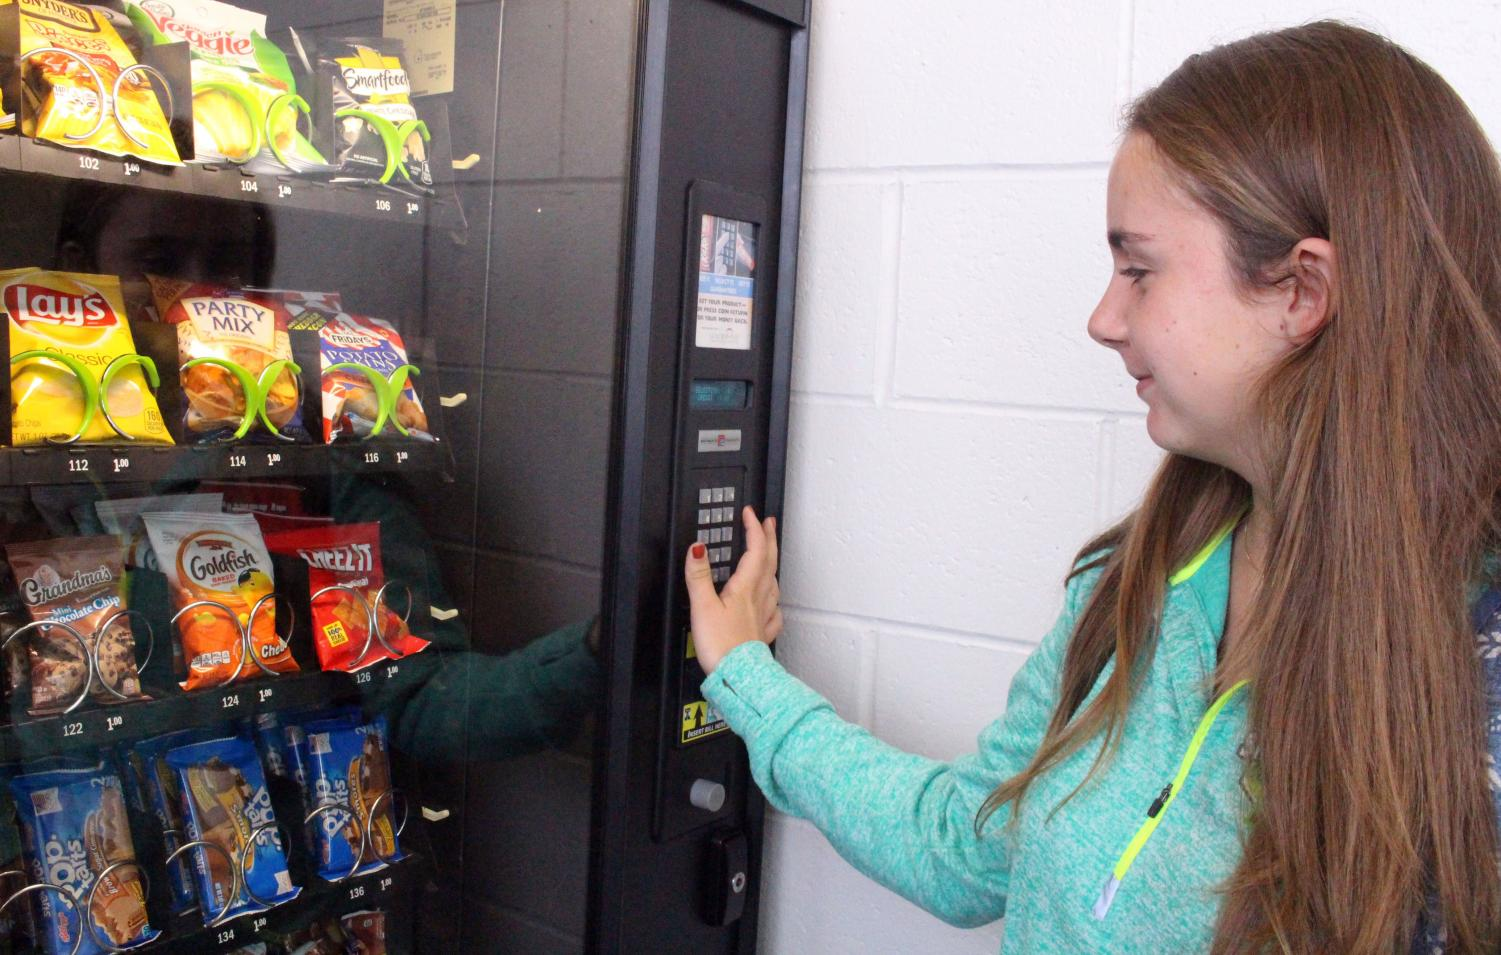 After+a+long+morning+of+classes%2C+junior+Grace+Treshock+of+Monmouth+Beach+is+excited+to+get+a+snack+from+the+vending+machine.+Luckily+the+vending+machine+had+Cheez-its+today%2C+which+are+her+favorite.